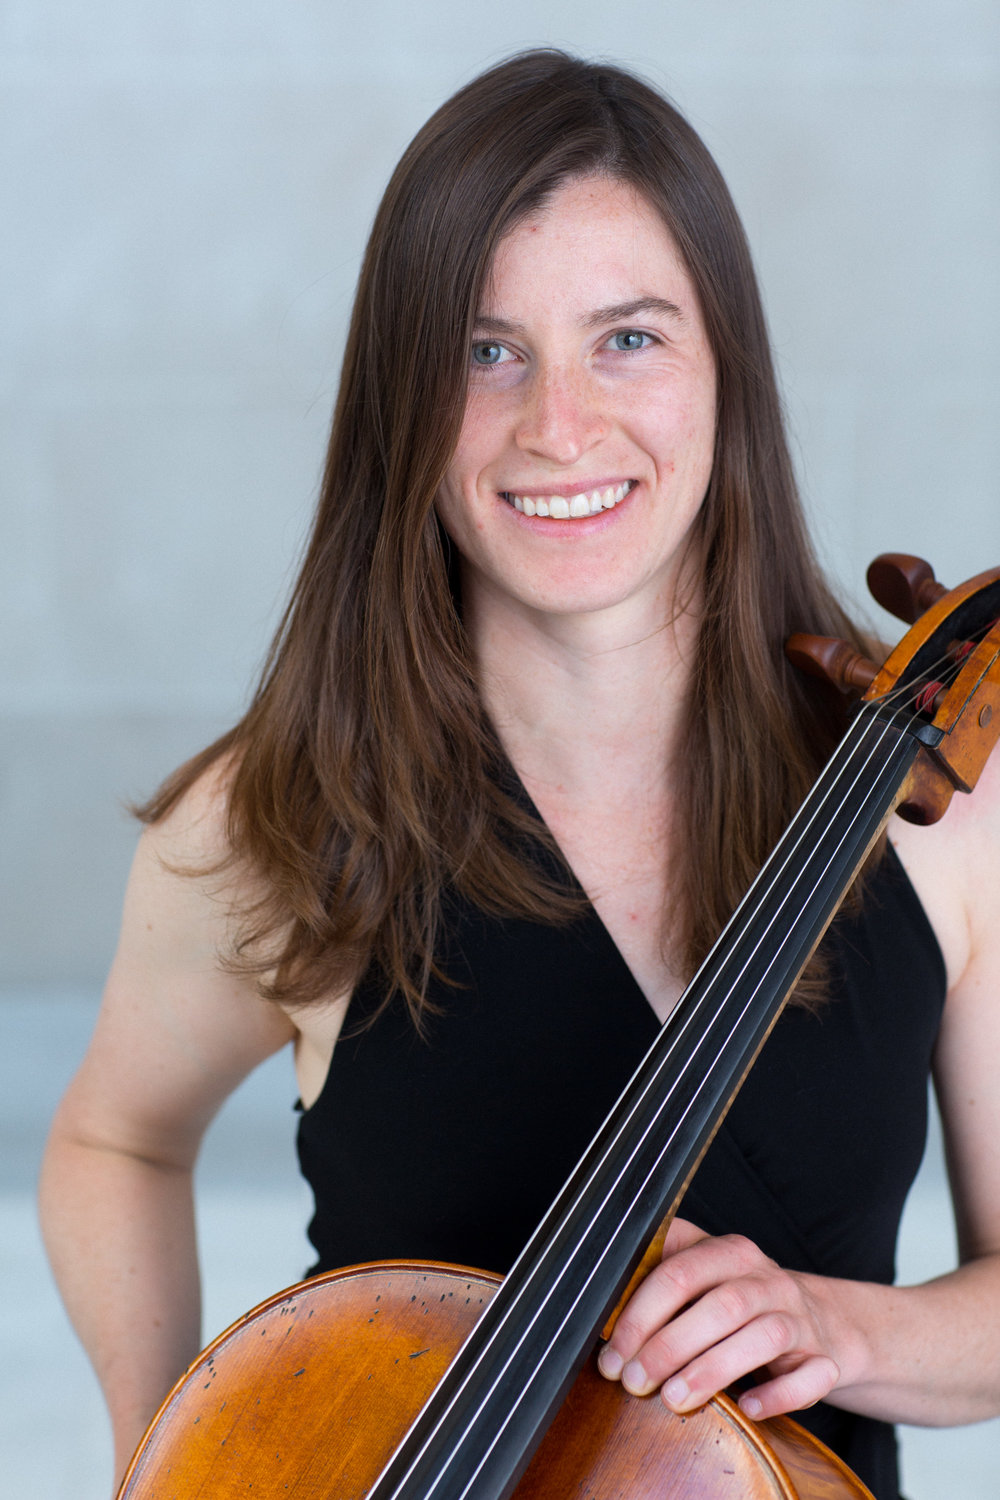 Joanne de Mars, cello